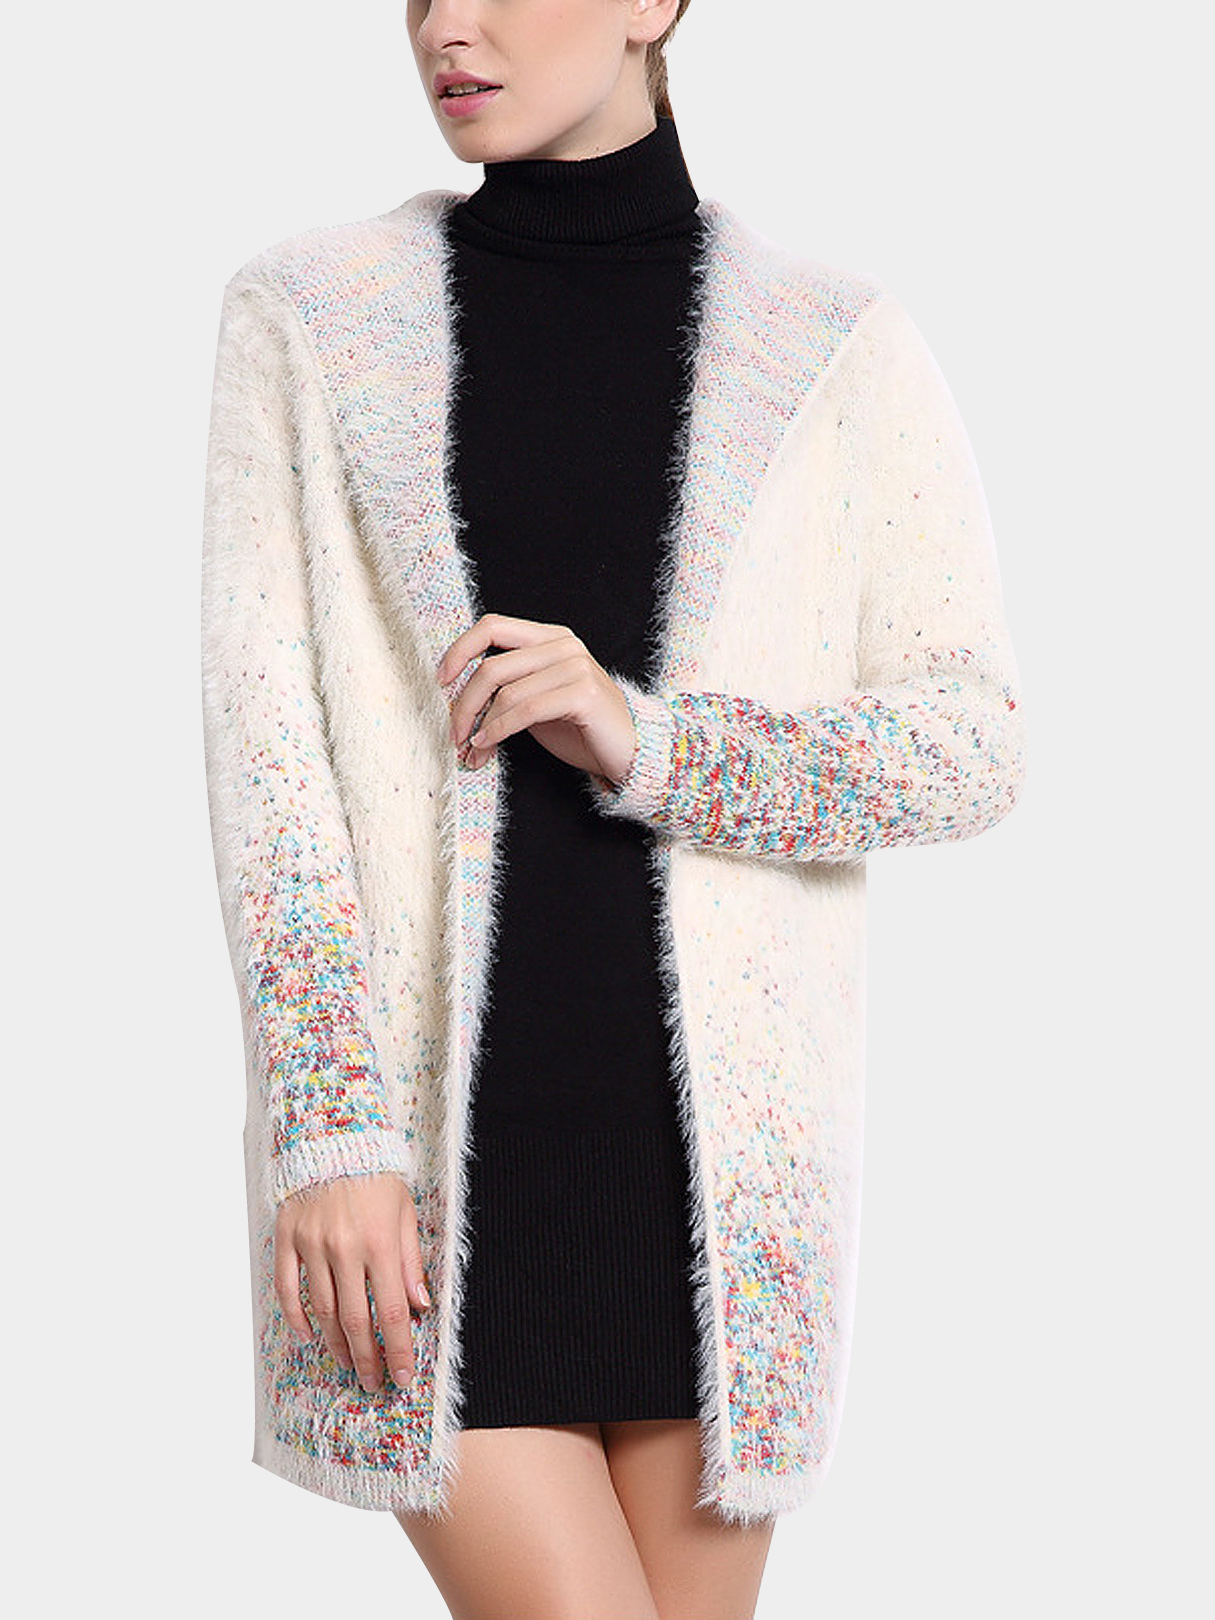 White Hooded Cardigan with Colorful Pattern